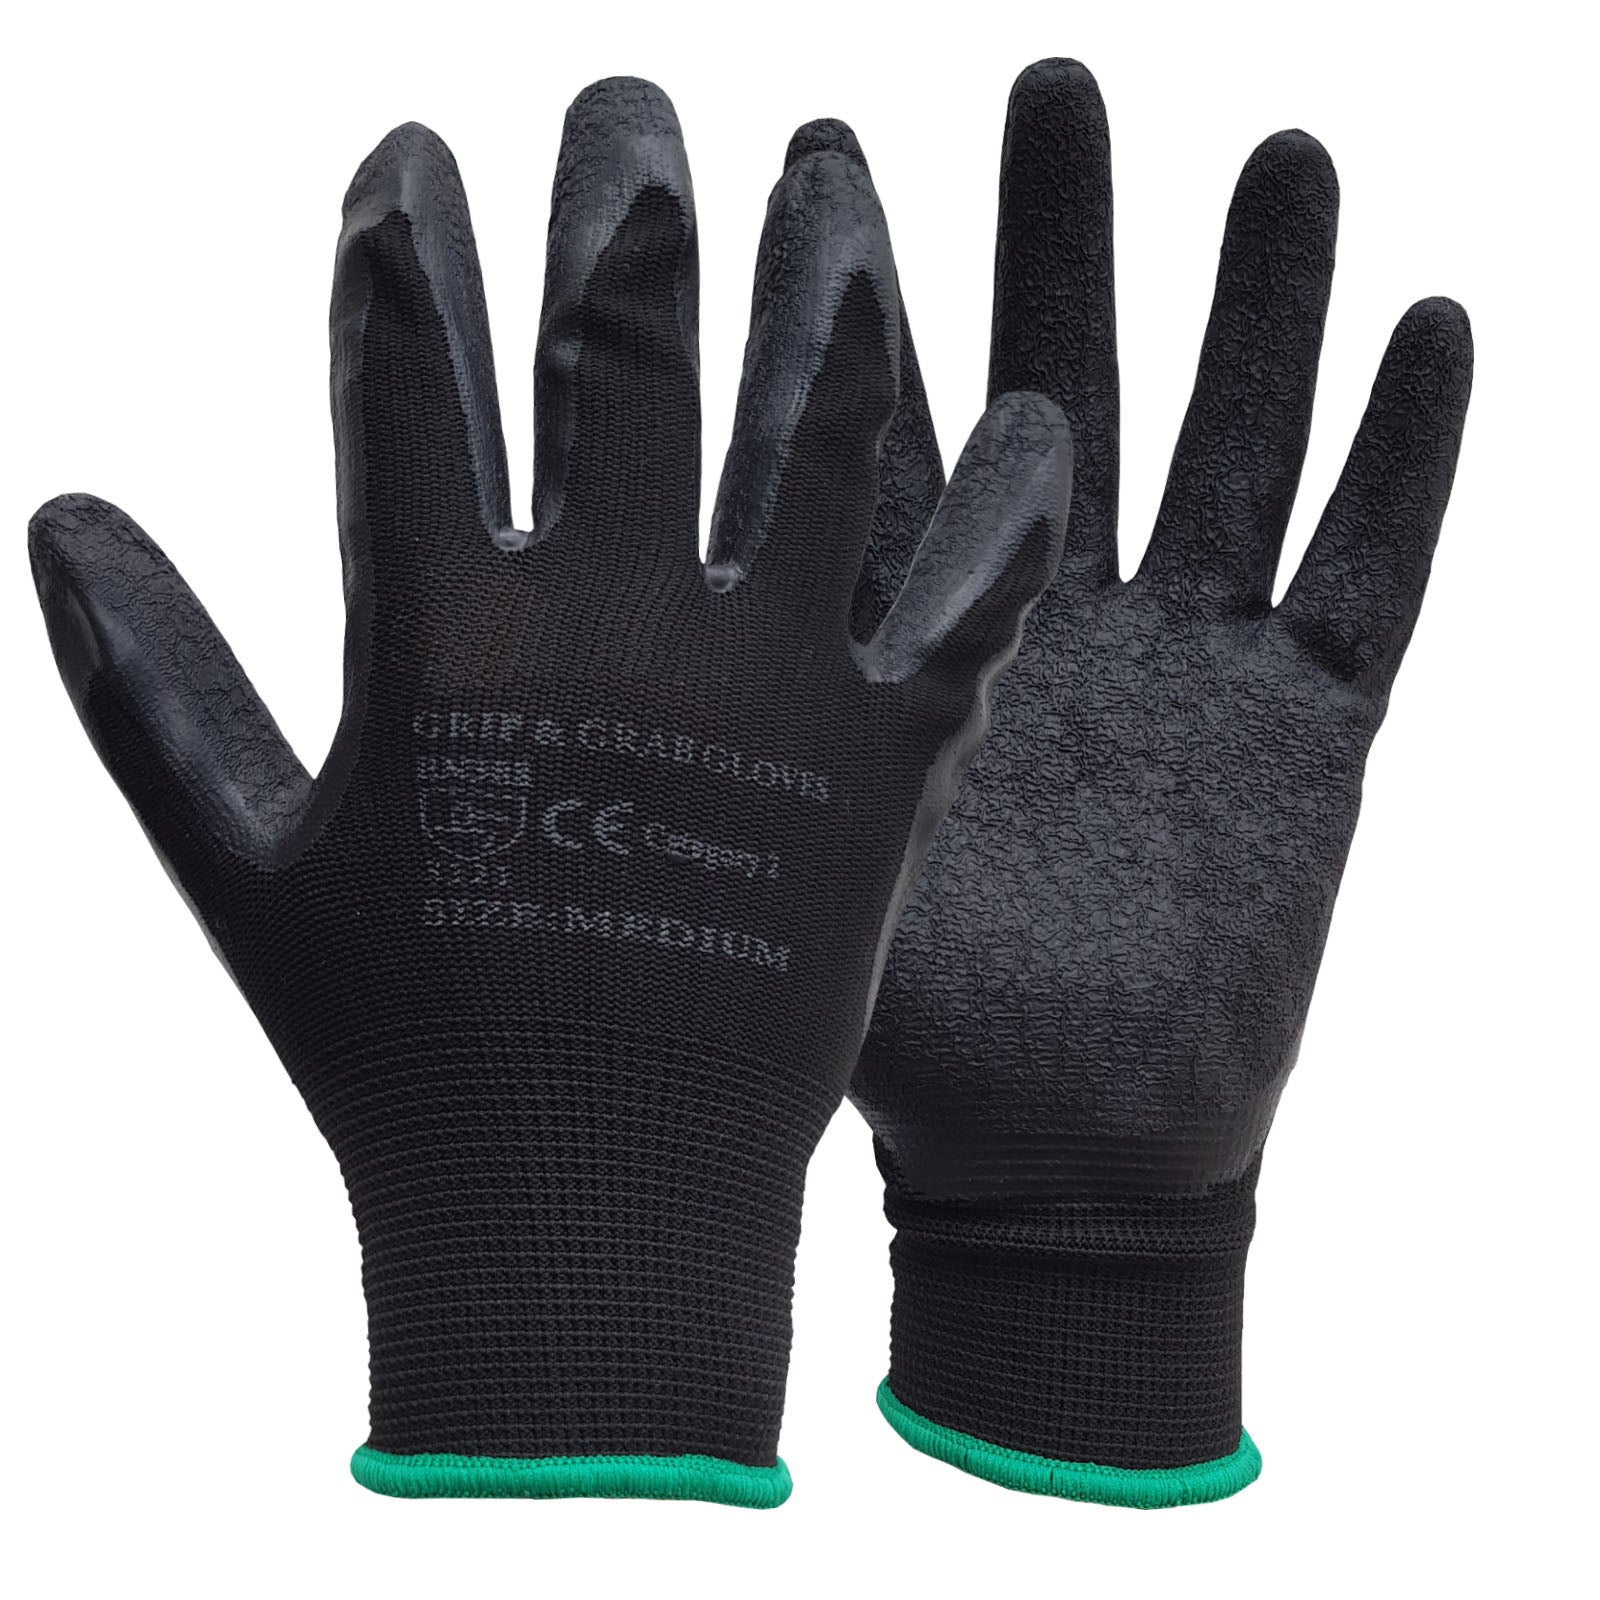 Black High Quality Latex Coated Grip and Grab Safety Work Glove - RUFTUF